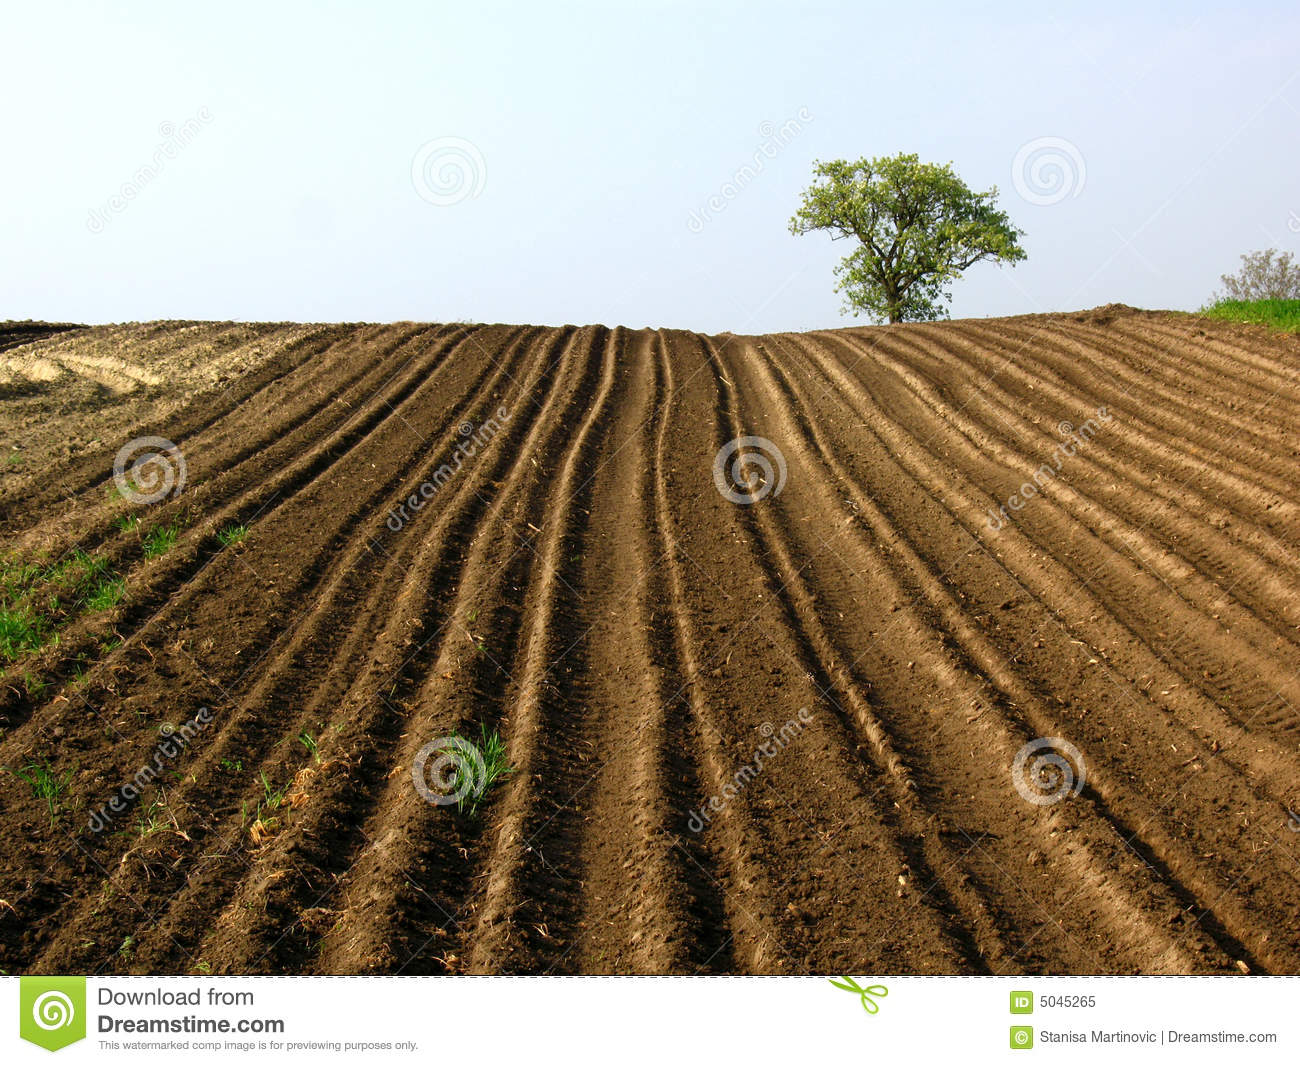 https://i2.wp.com/thumbs.dreamstime.com/z/plowed-field-5045265.jpg